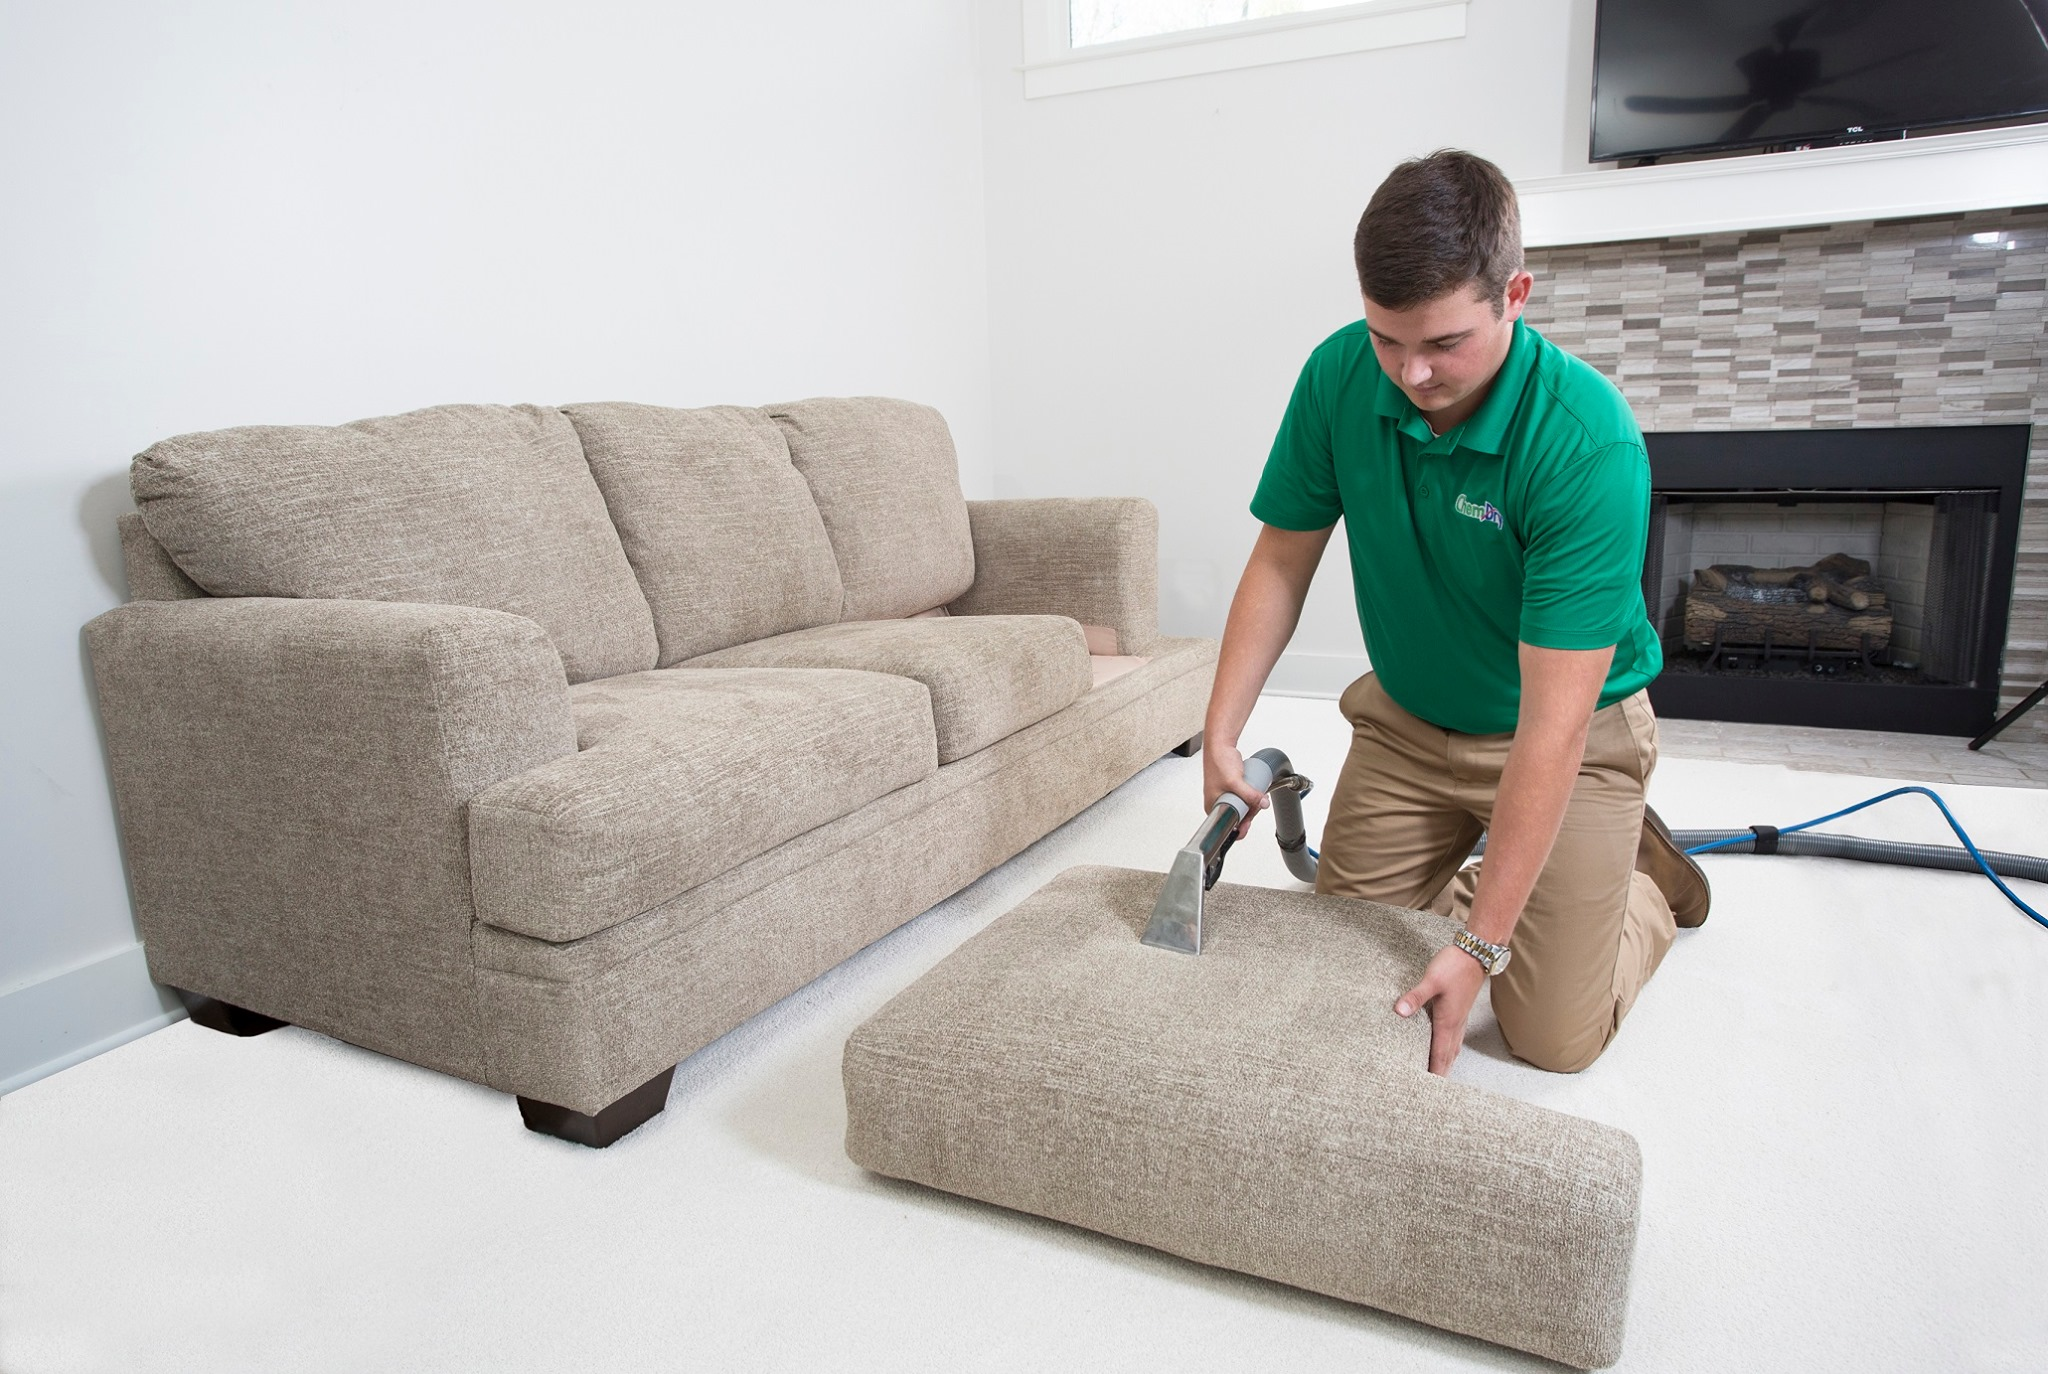 Chem-Dry technician cleaning a couch cushion